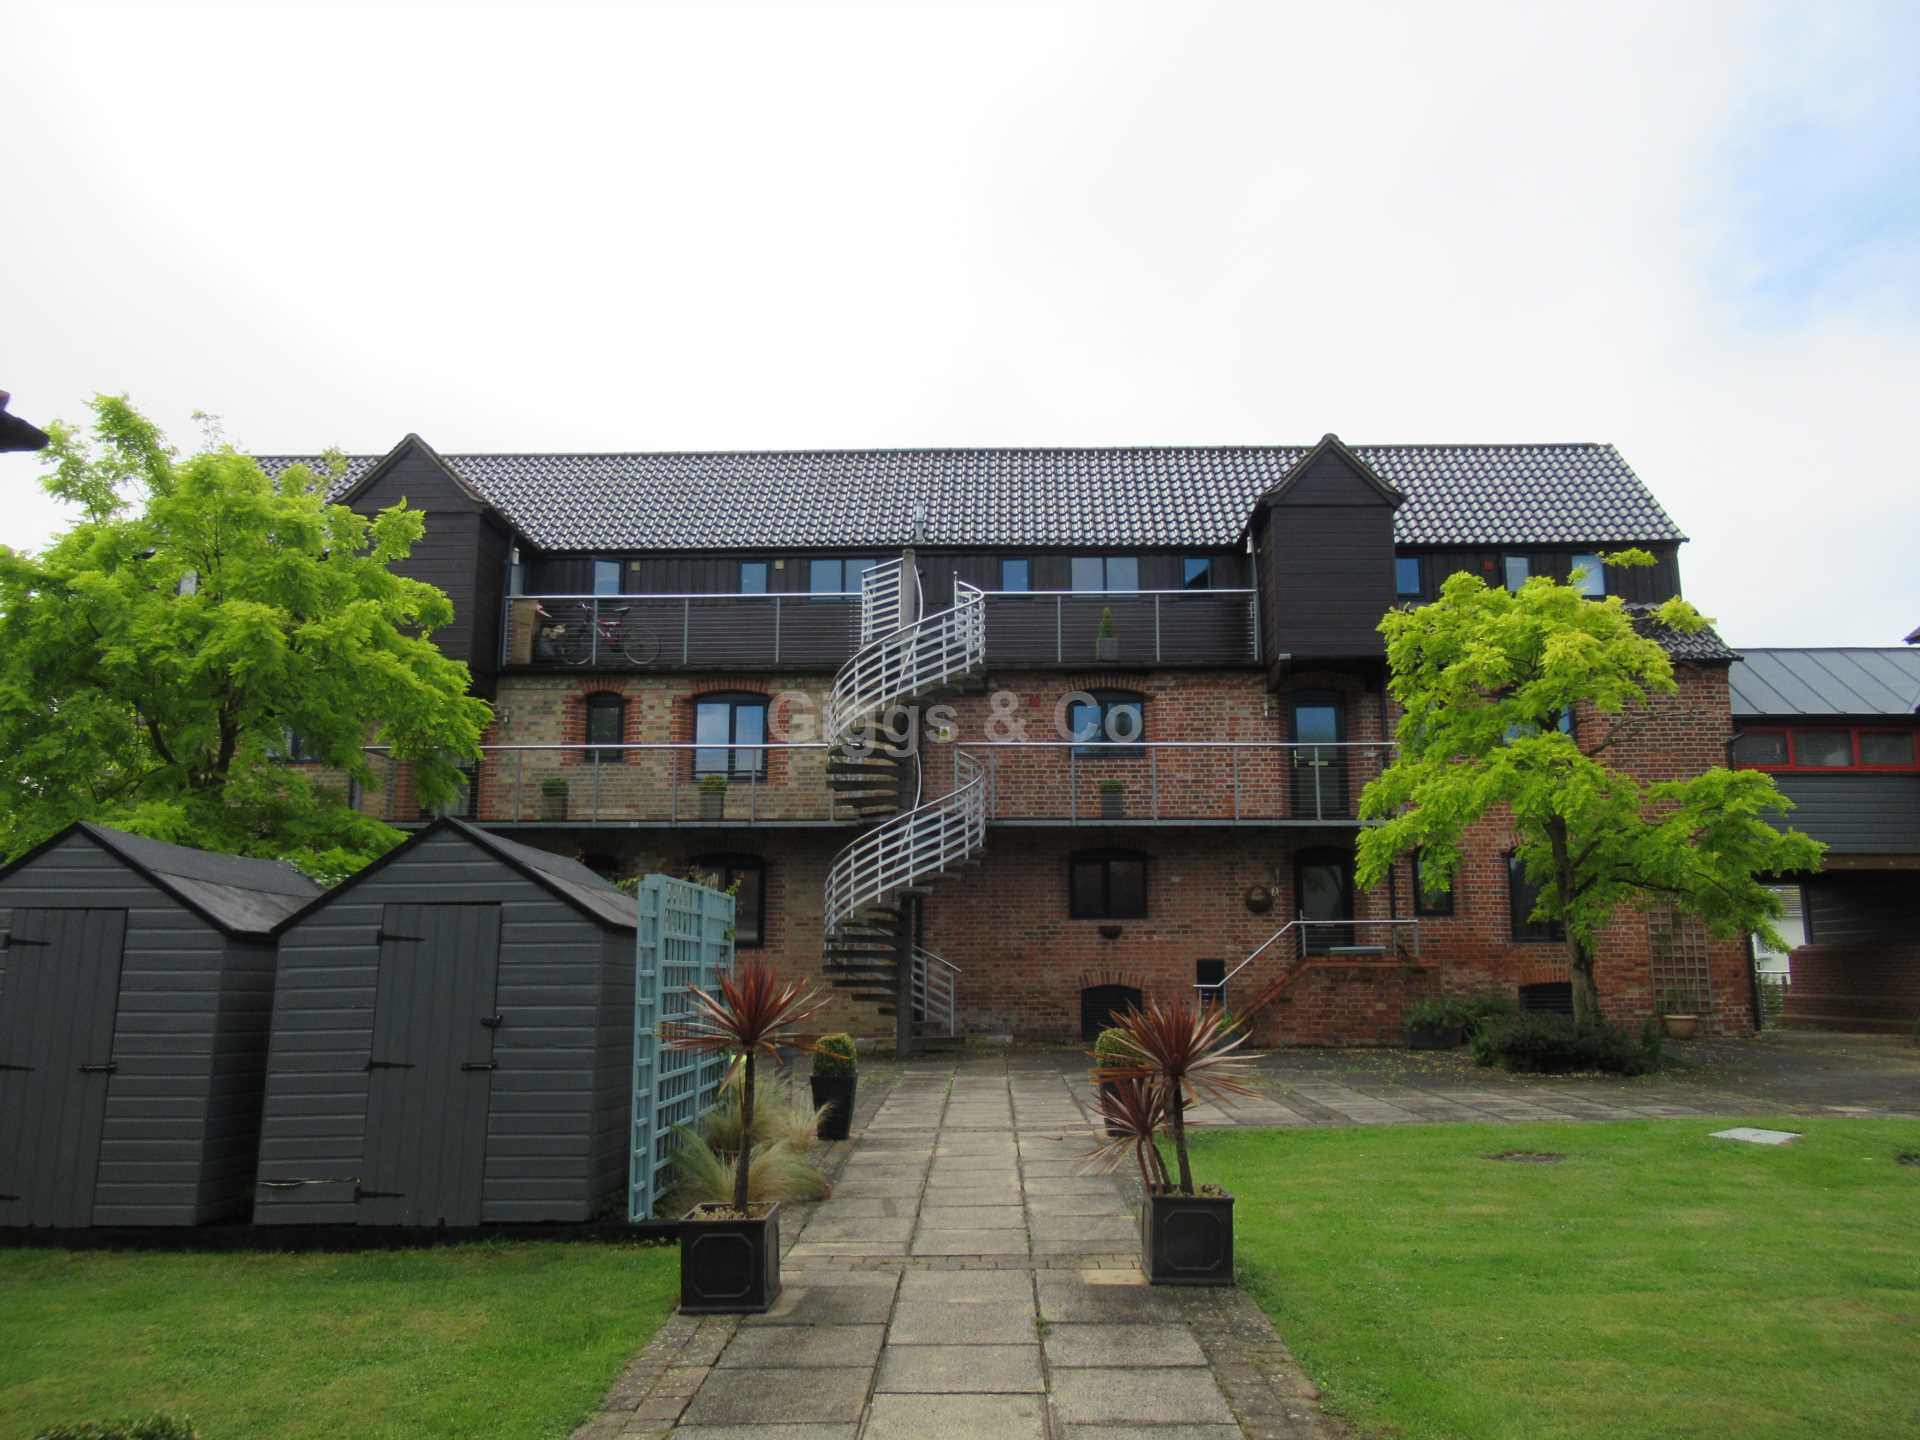 2 bed apartment to rent in Buckden, St Neots, PE19